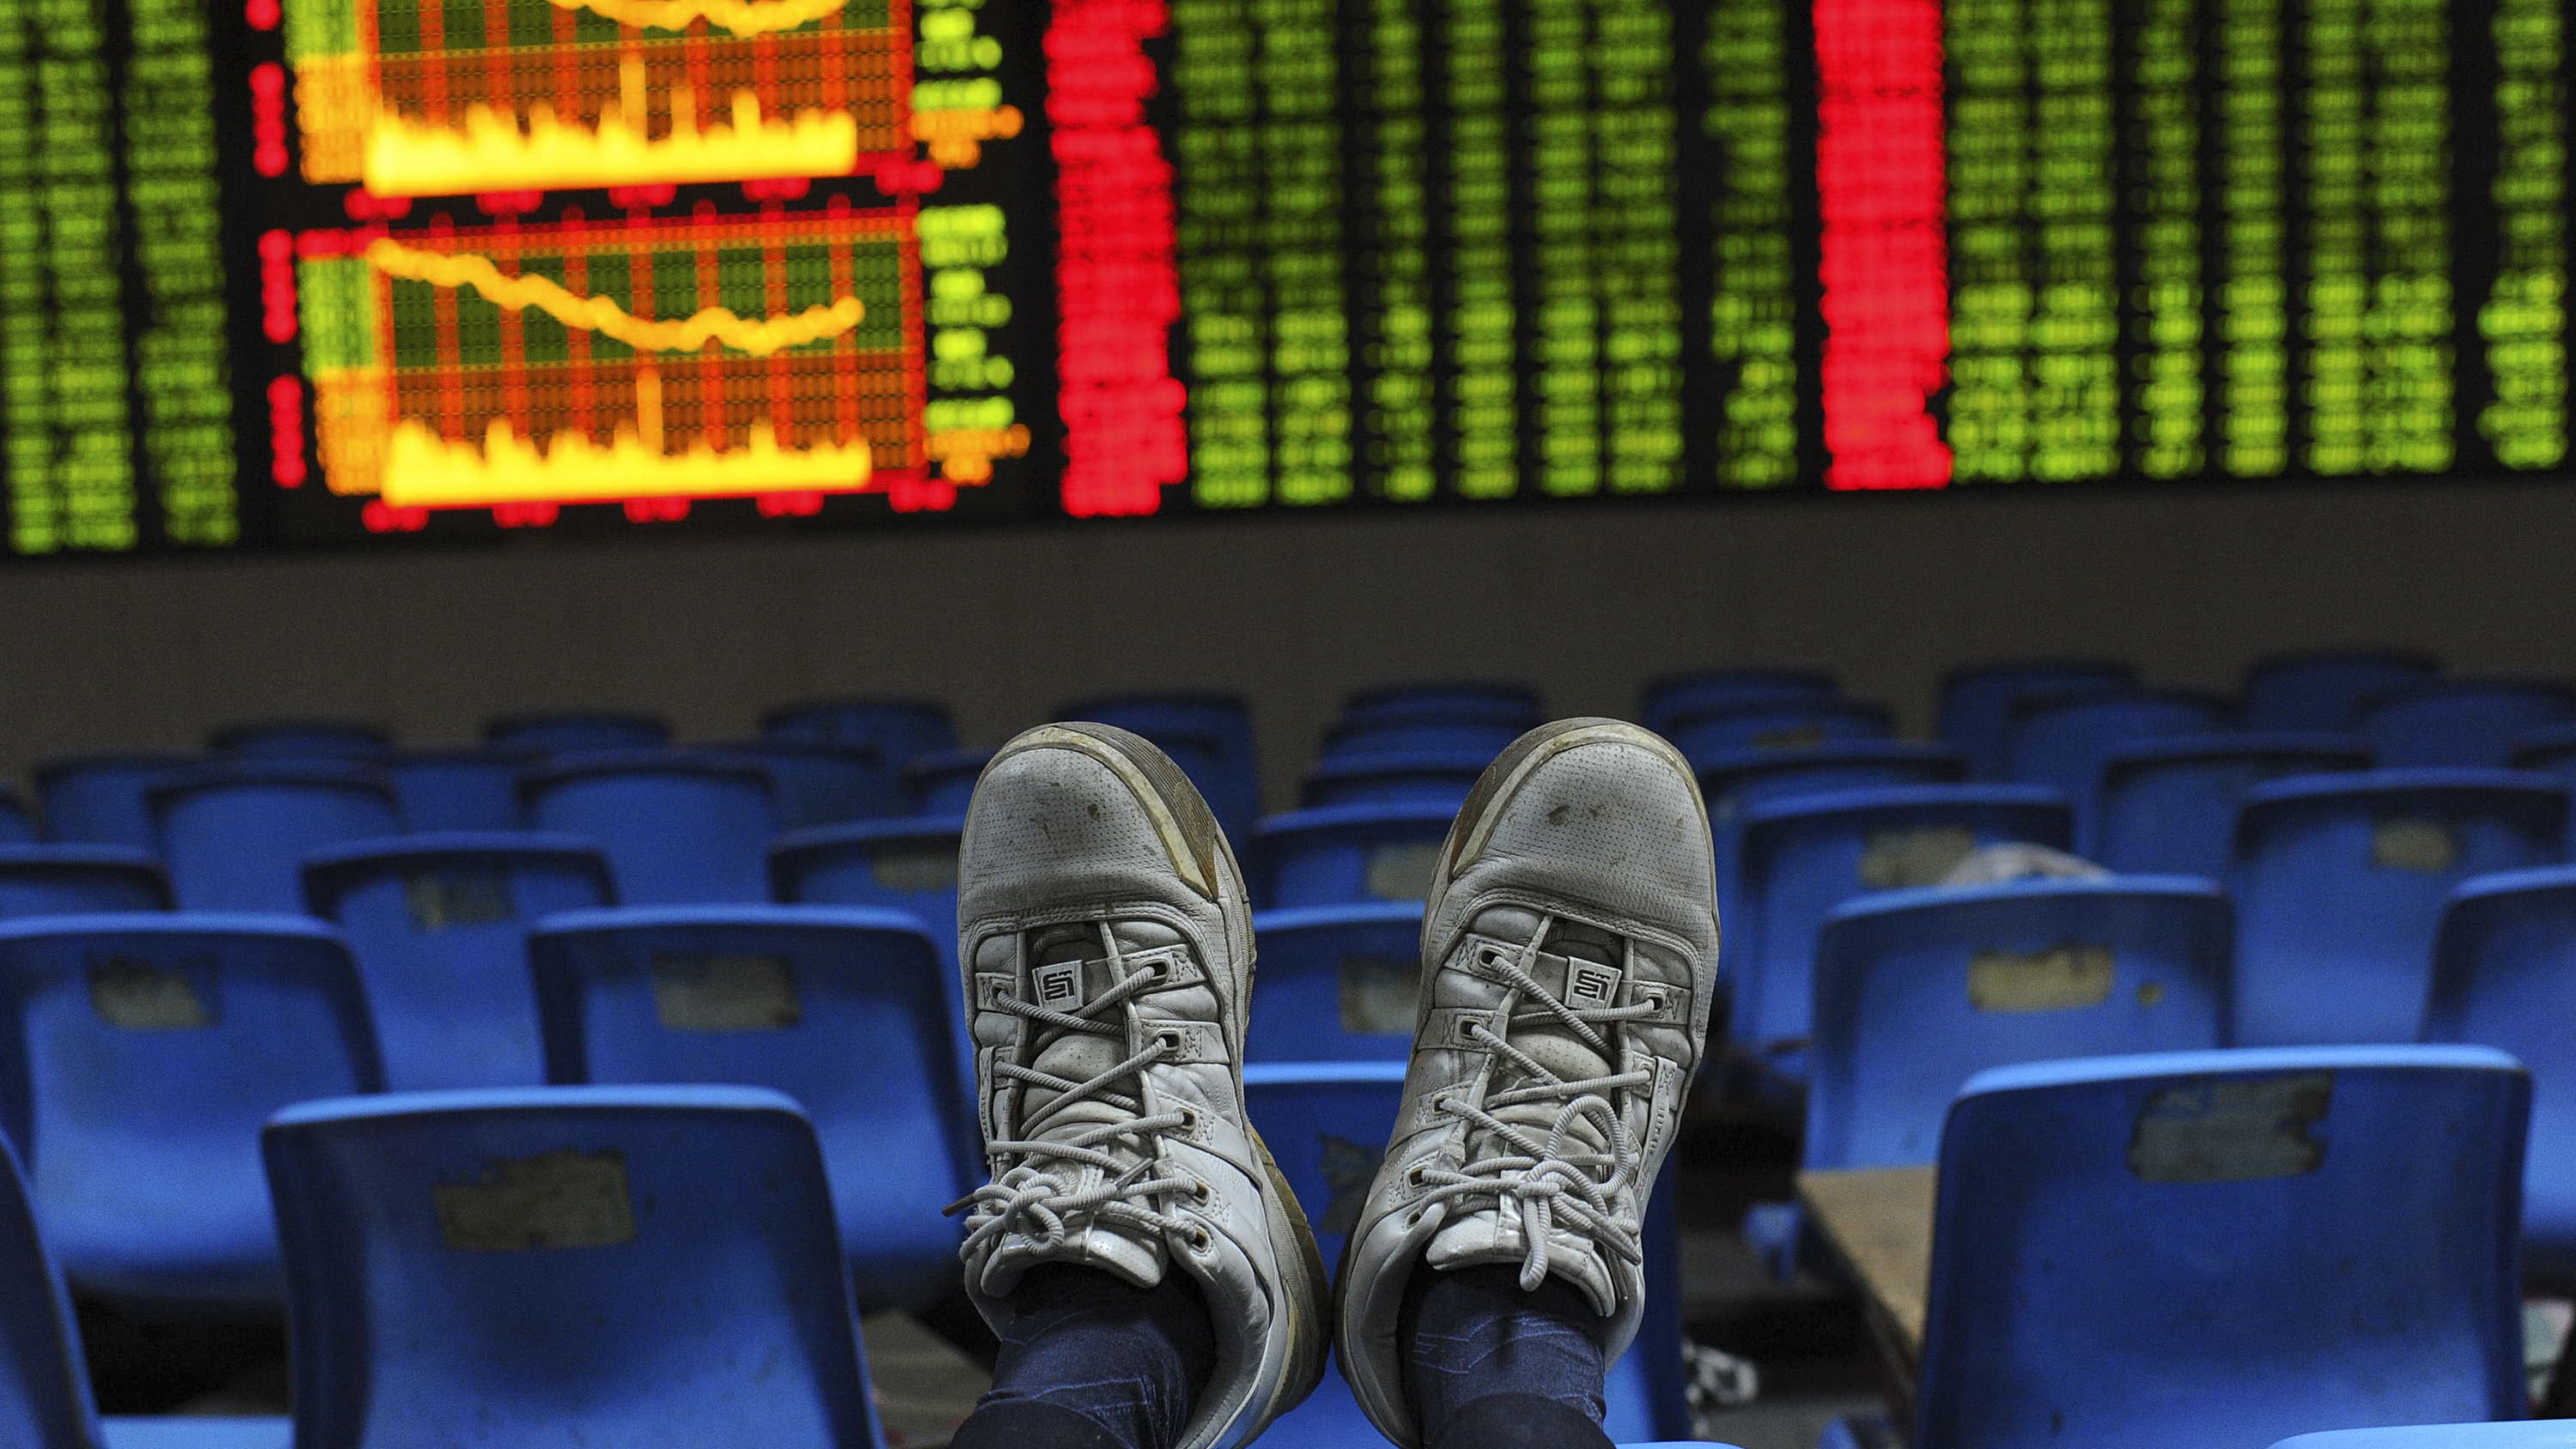 An investor puts his feet onto the back of a chair in front of an electronic board displaying stock information at a brokerage house in Hefei, Anhui province October 26, 2012.